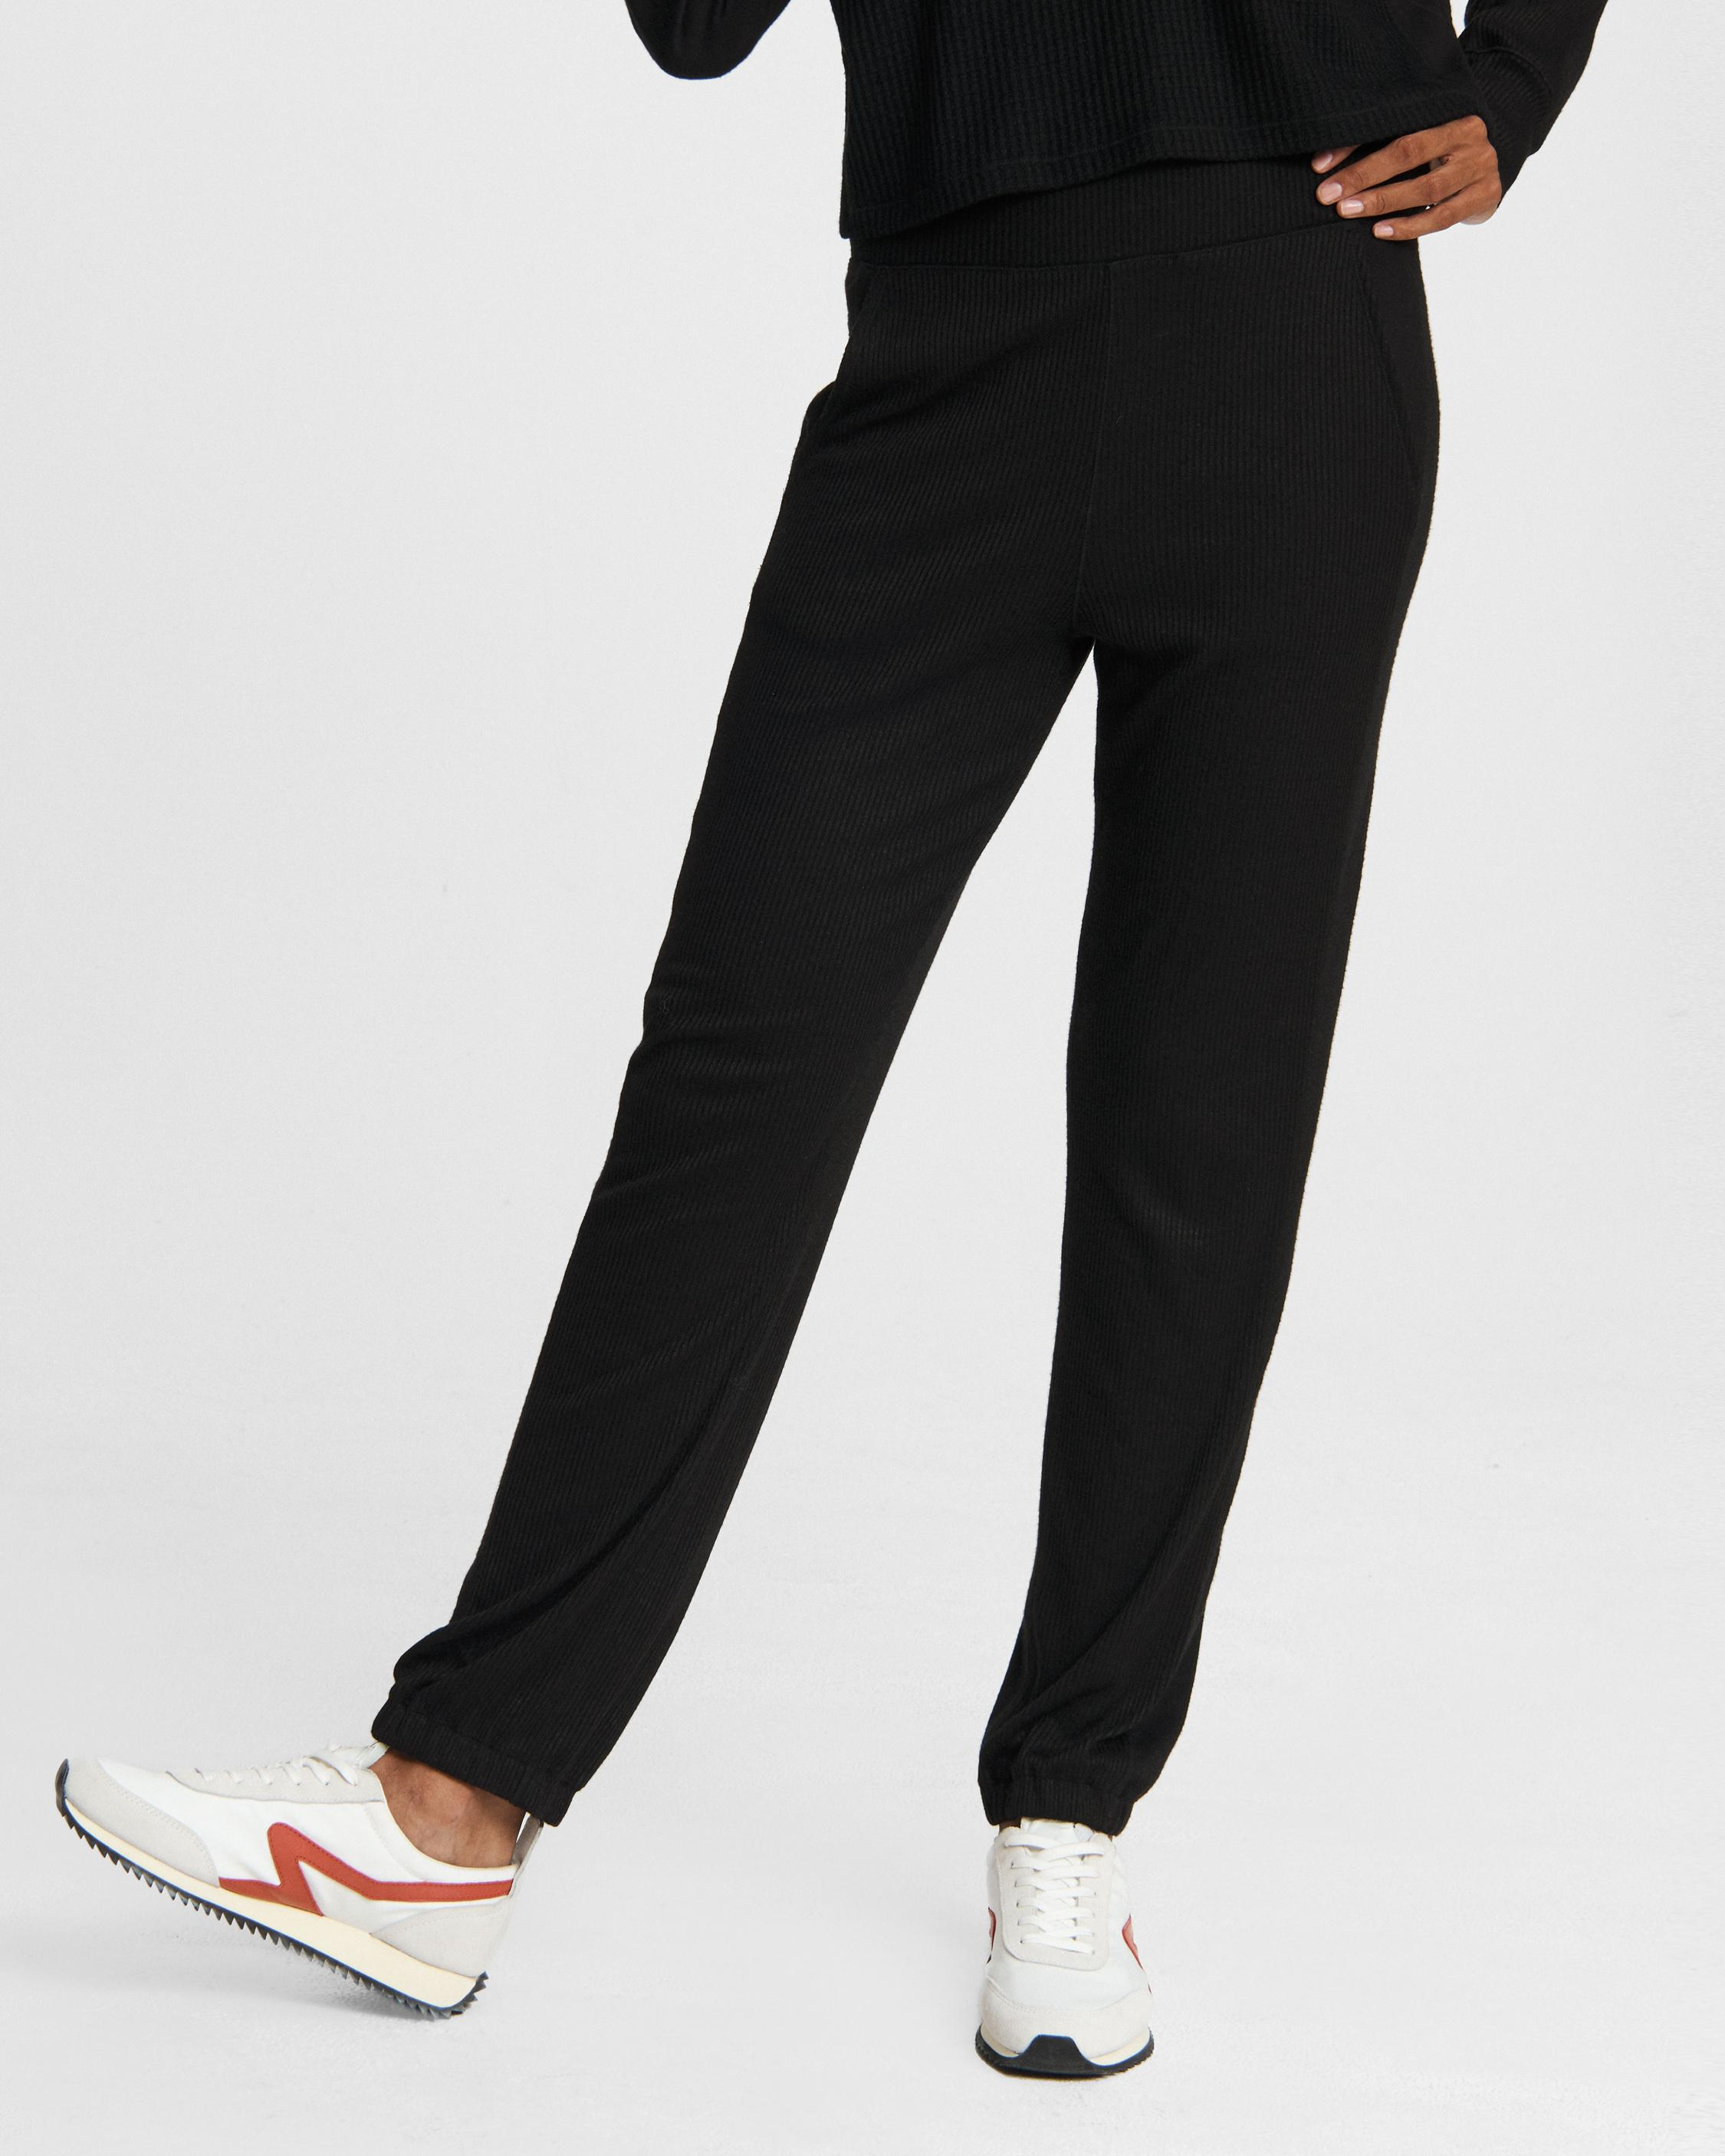 The knit jersey pant